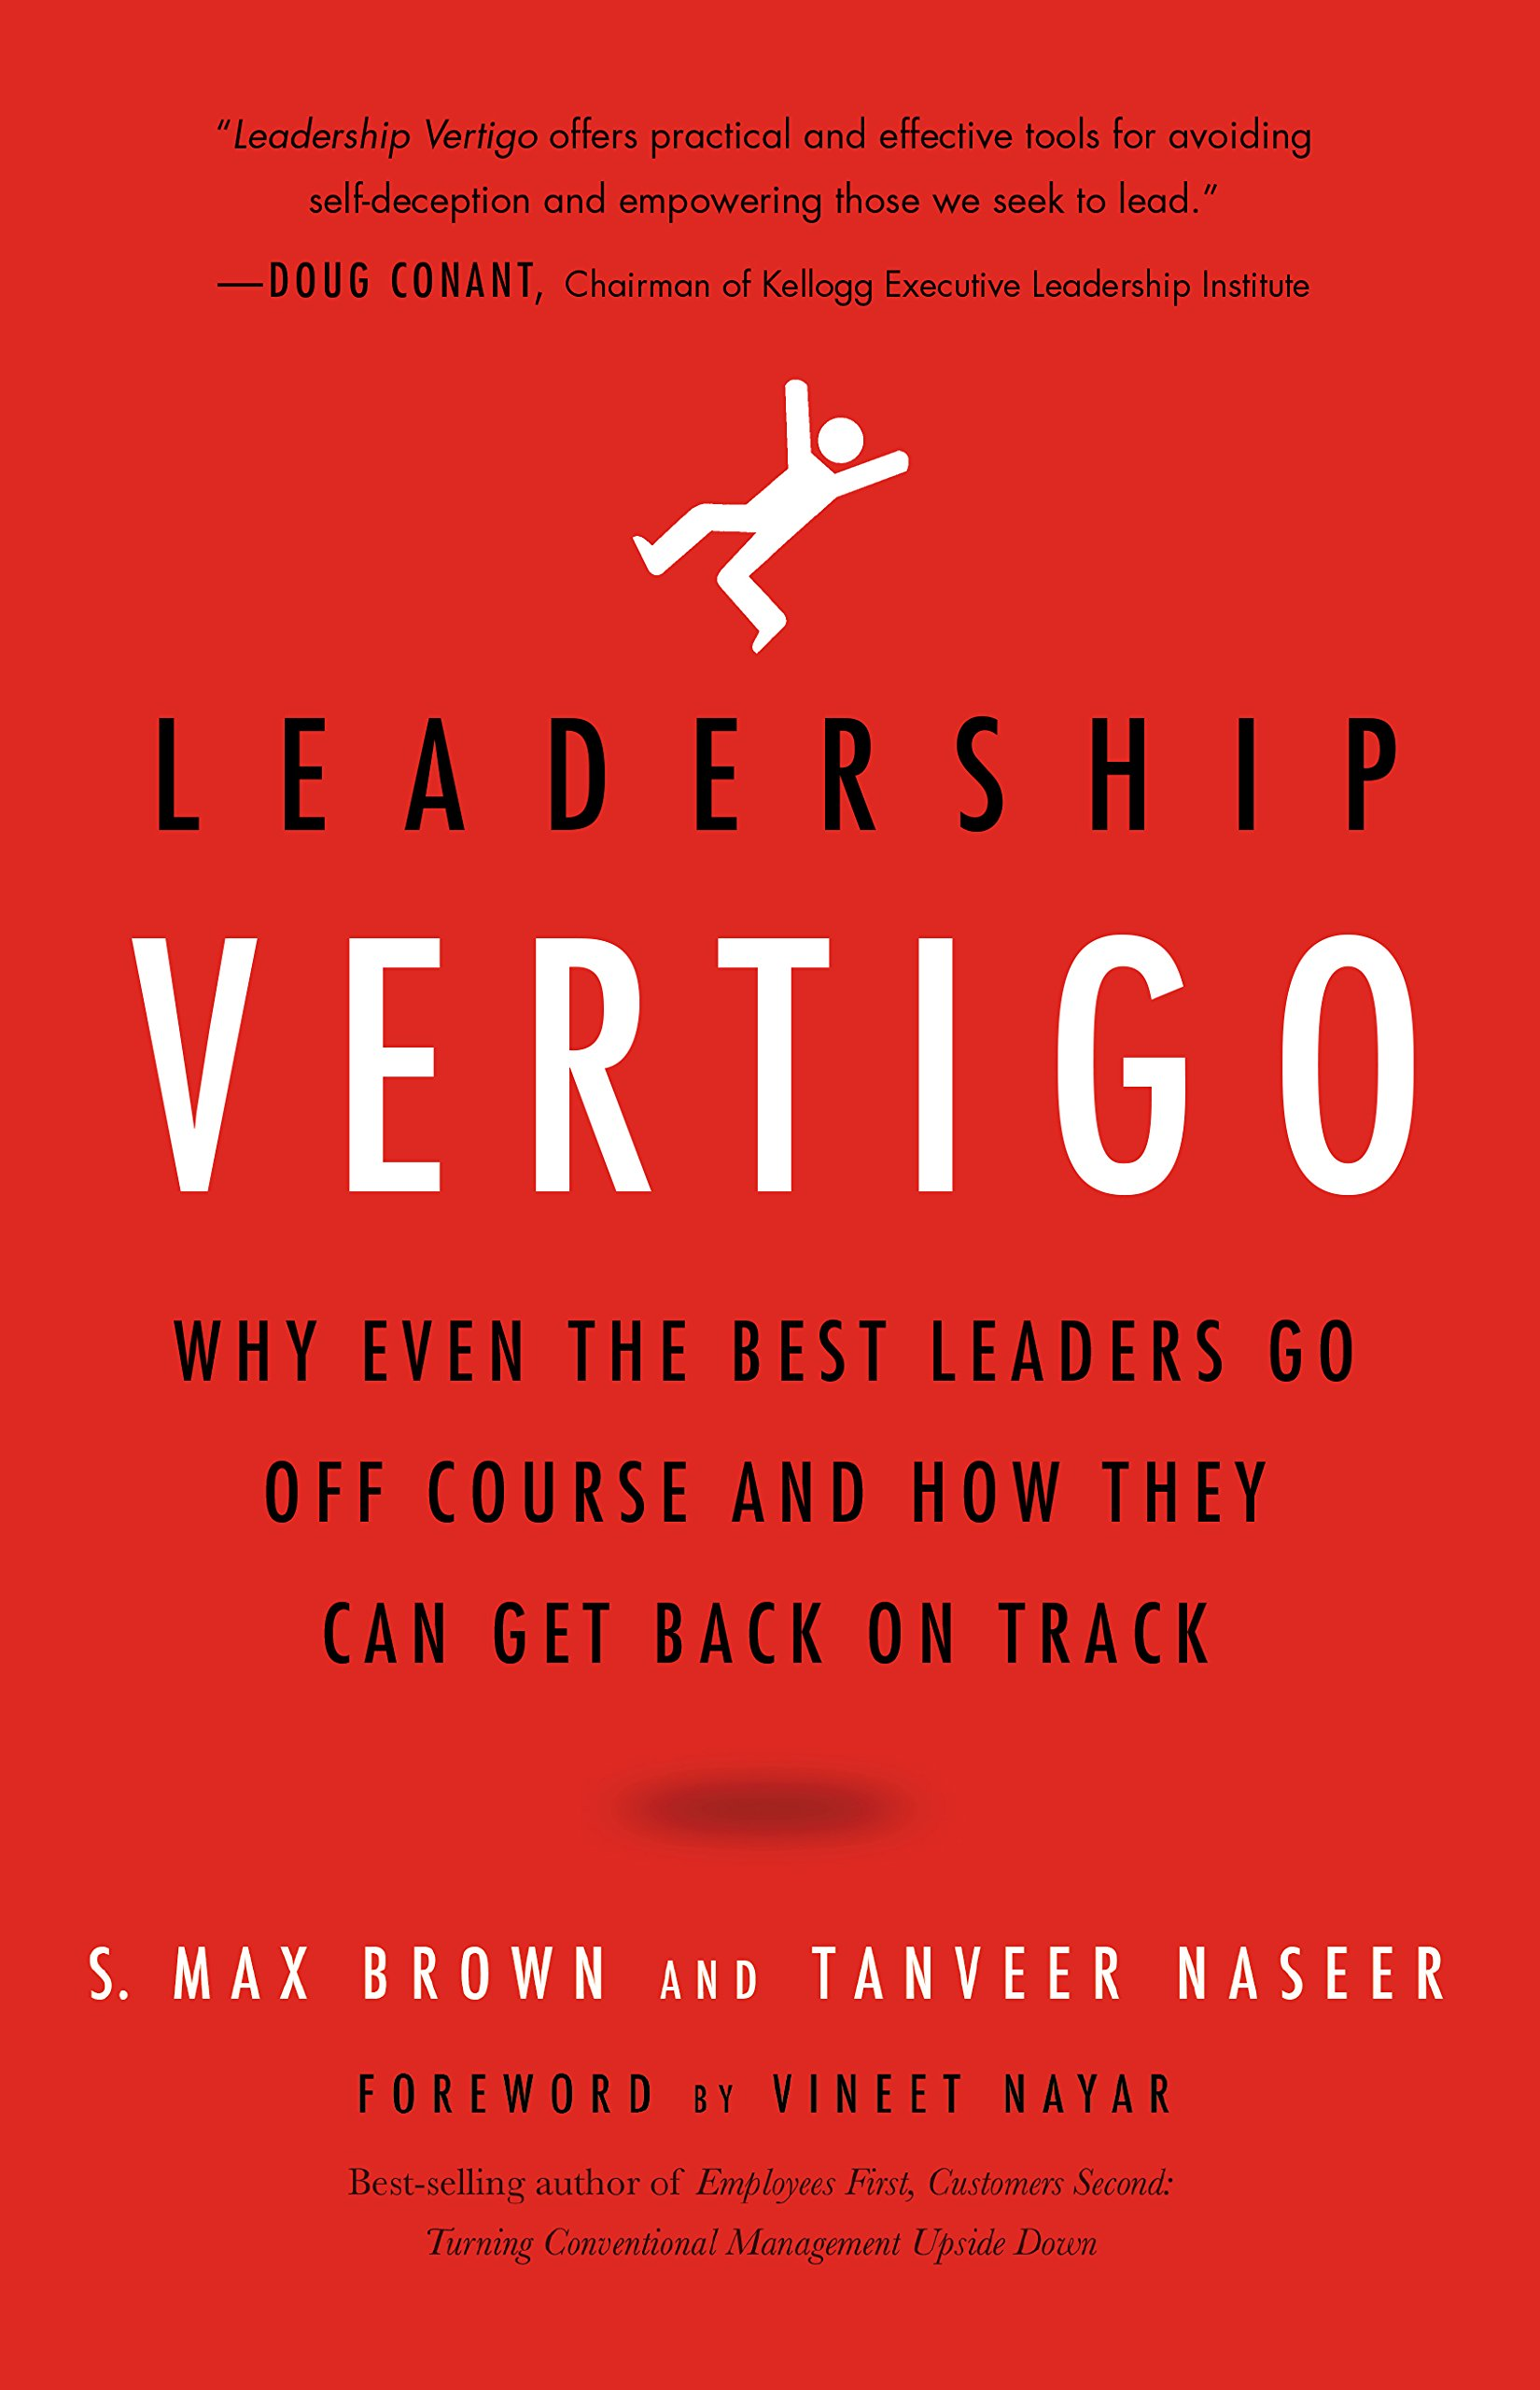 Leadership Vertigo: Why Even the Best Leaders Go Off Course and How They Can Get Back On Track pdf